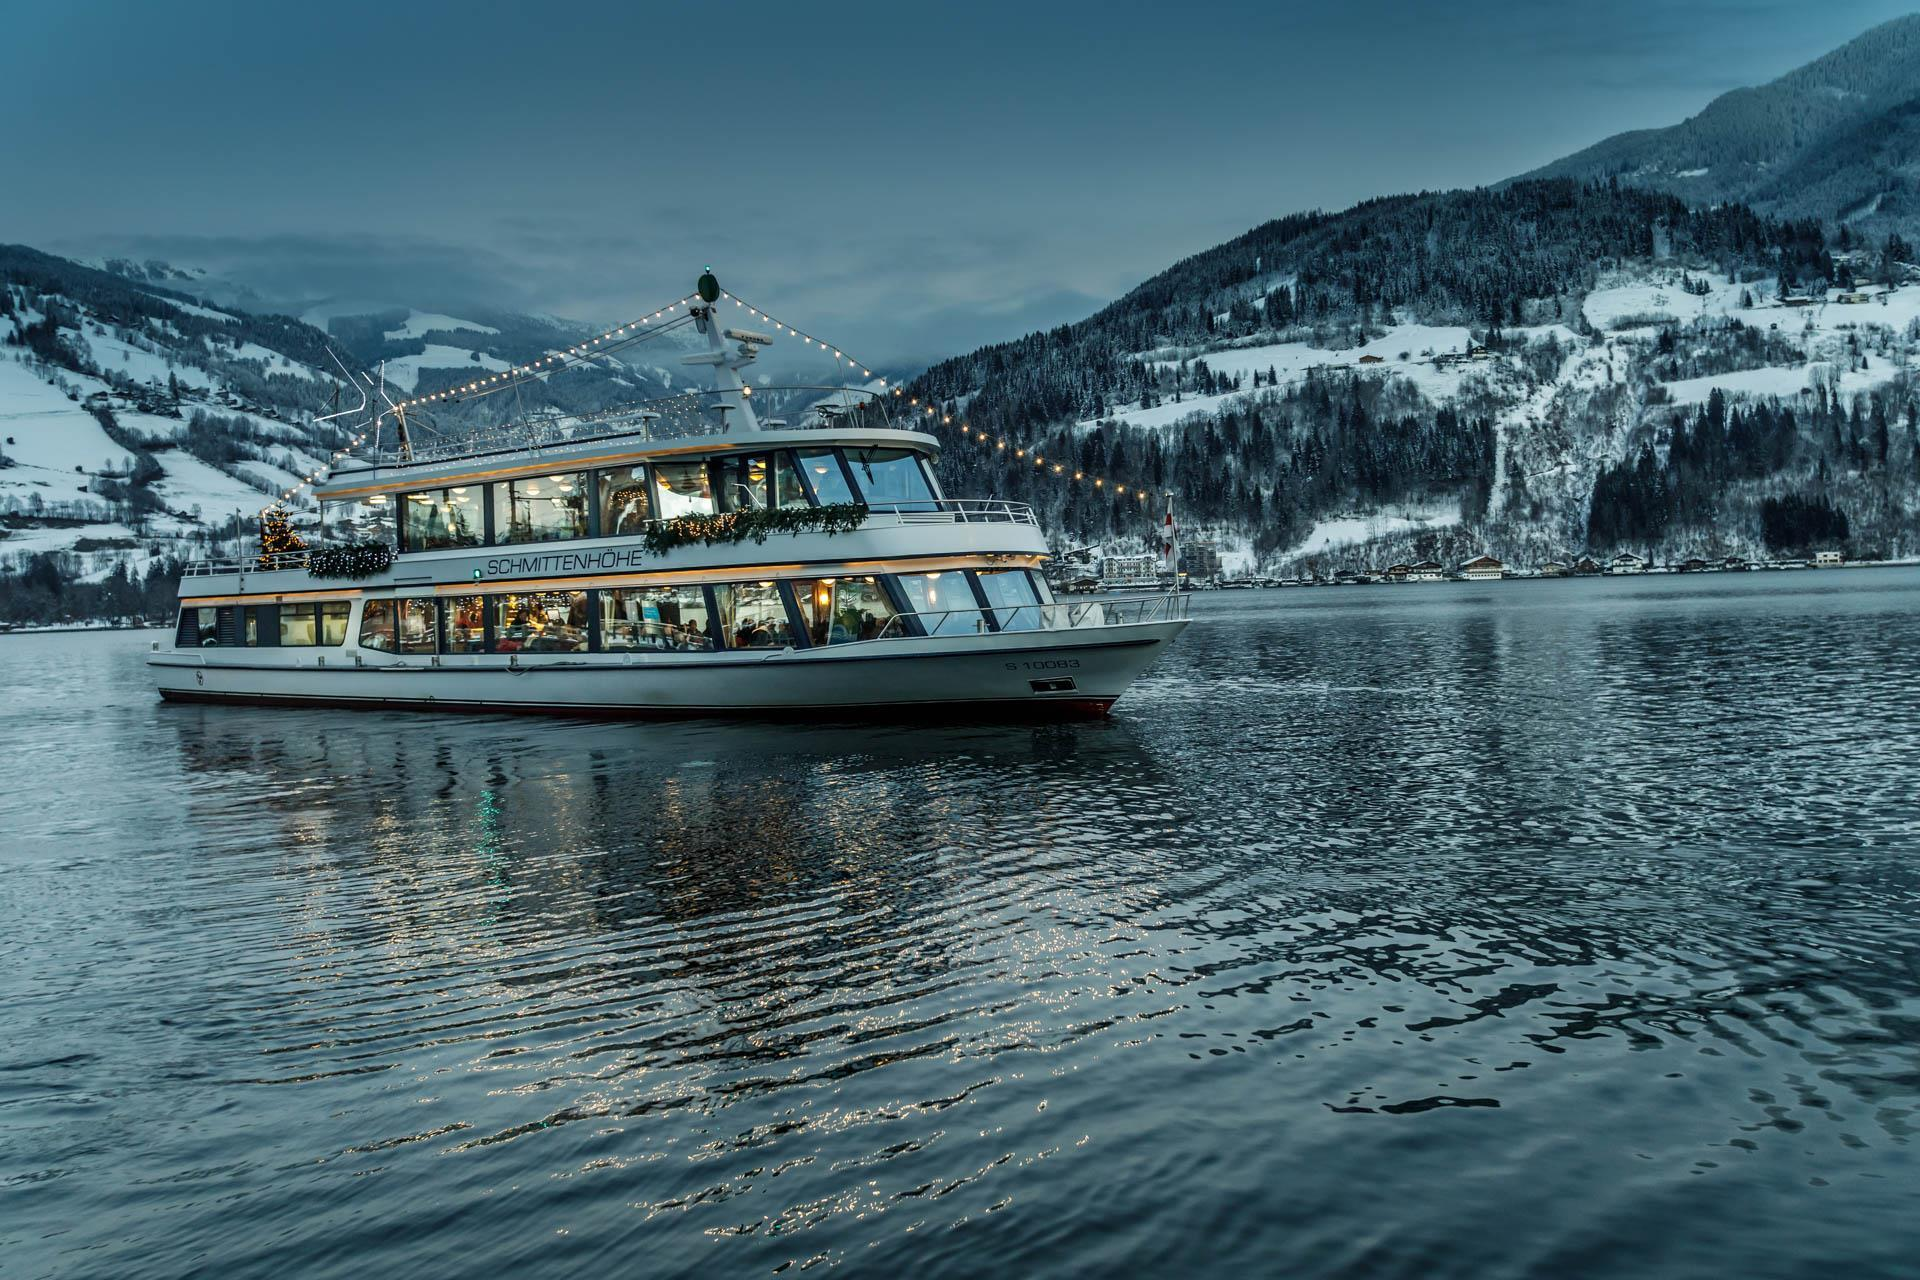 Starlight cruises on lake Zell - 14/12/2019, from 1:30 PM